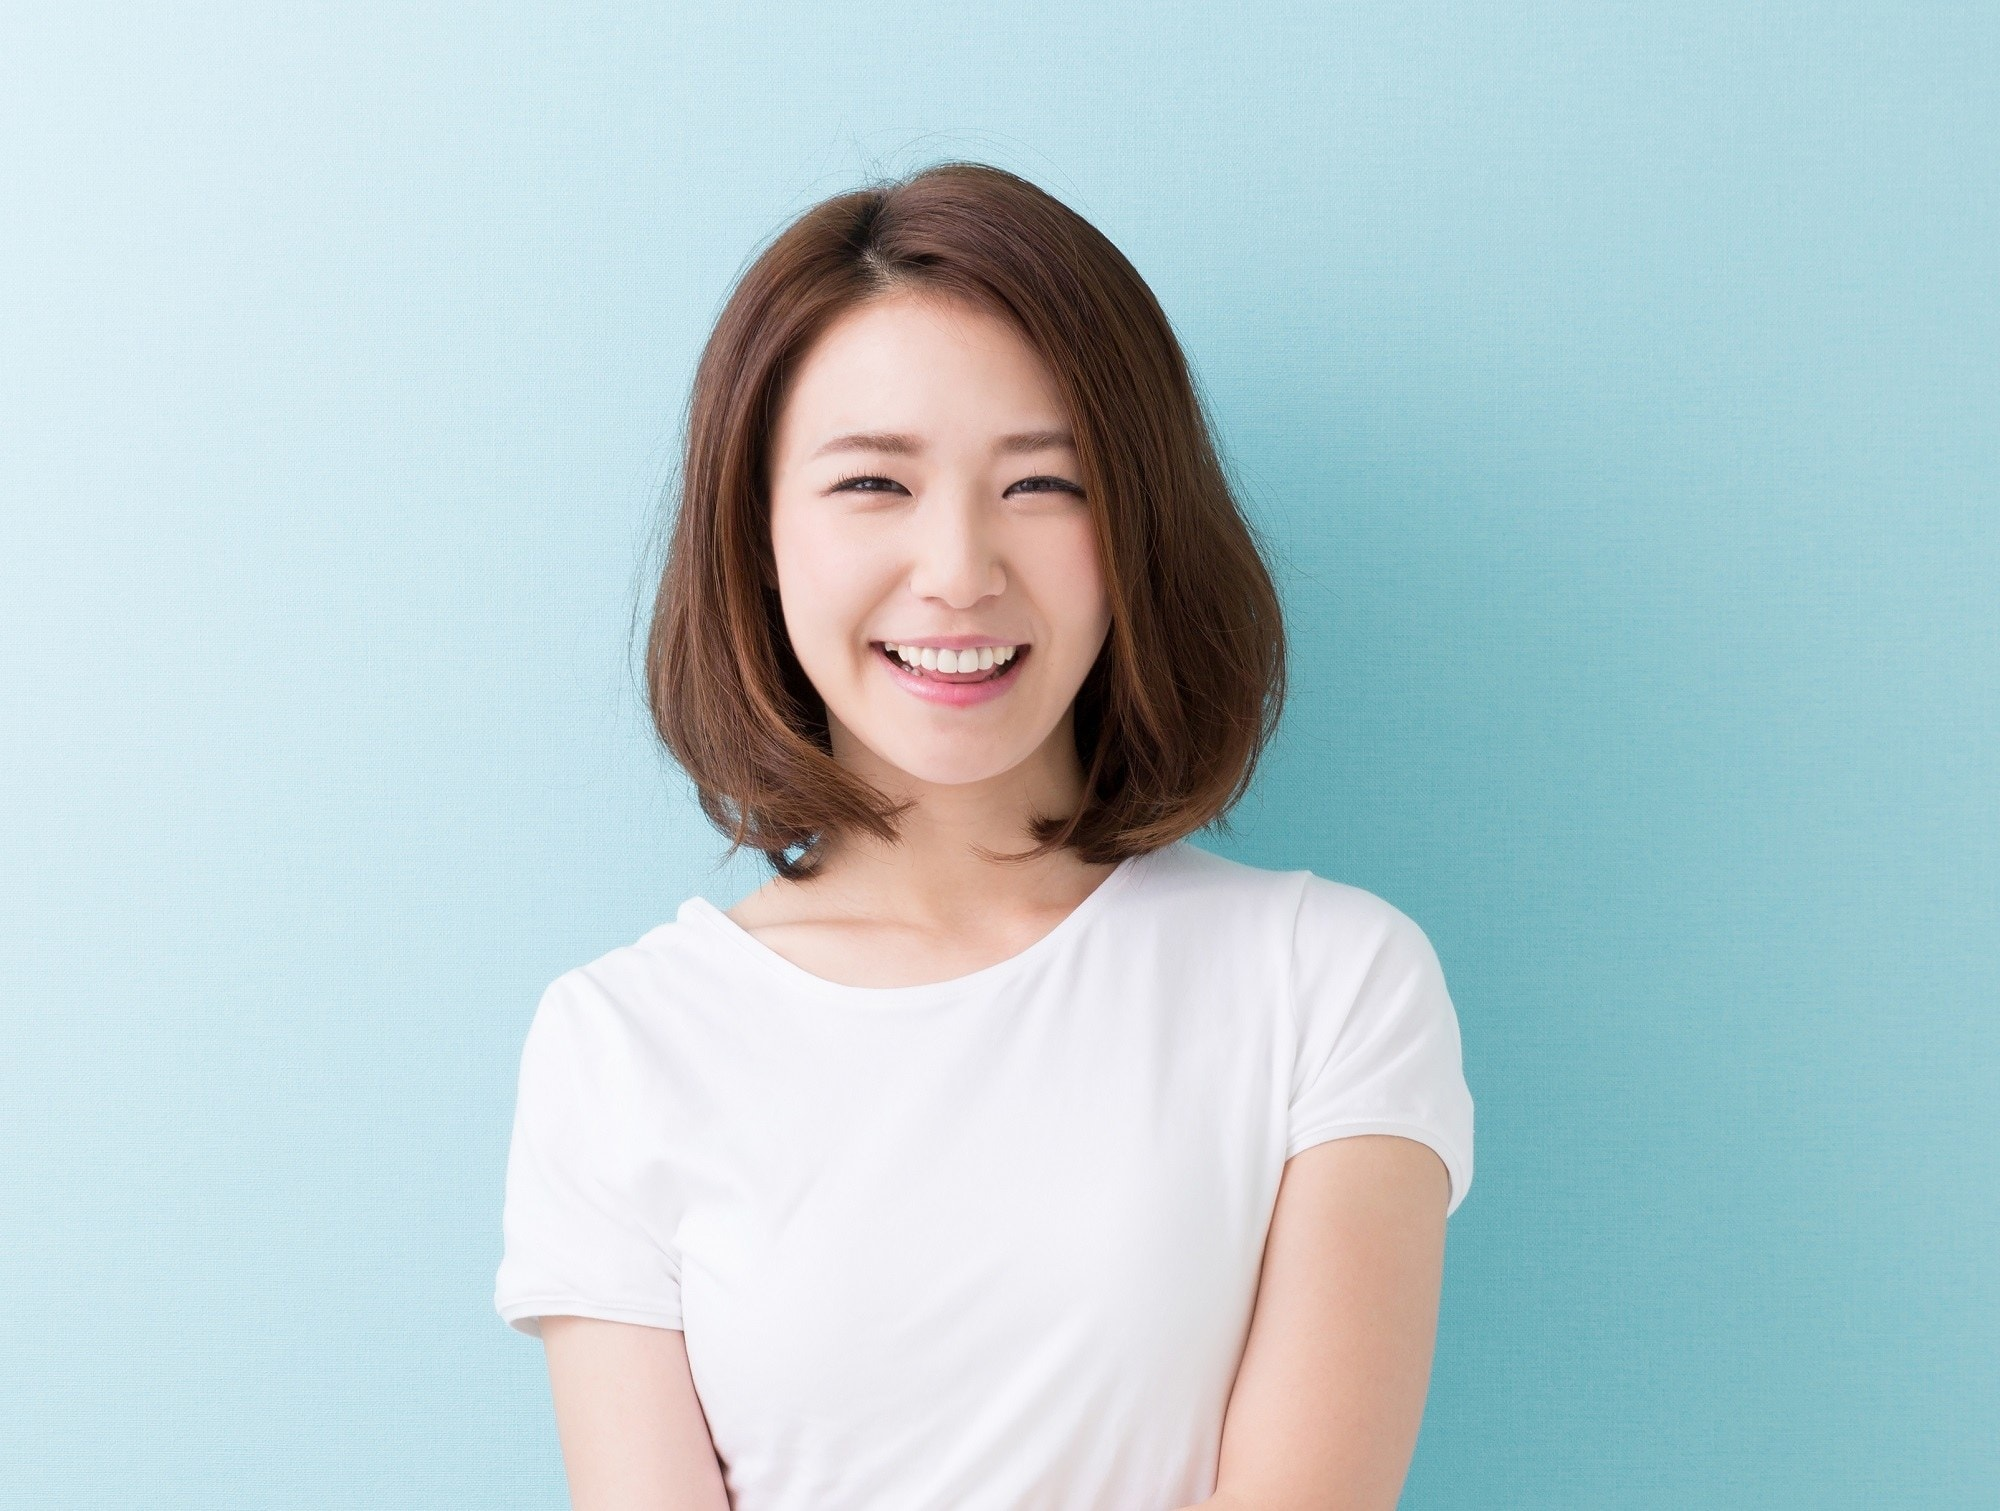 Medium bob: Asian woman wearing a white shirt with brown bob standing against a blue background